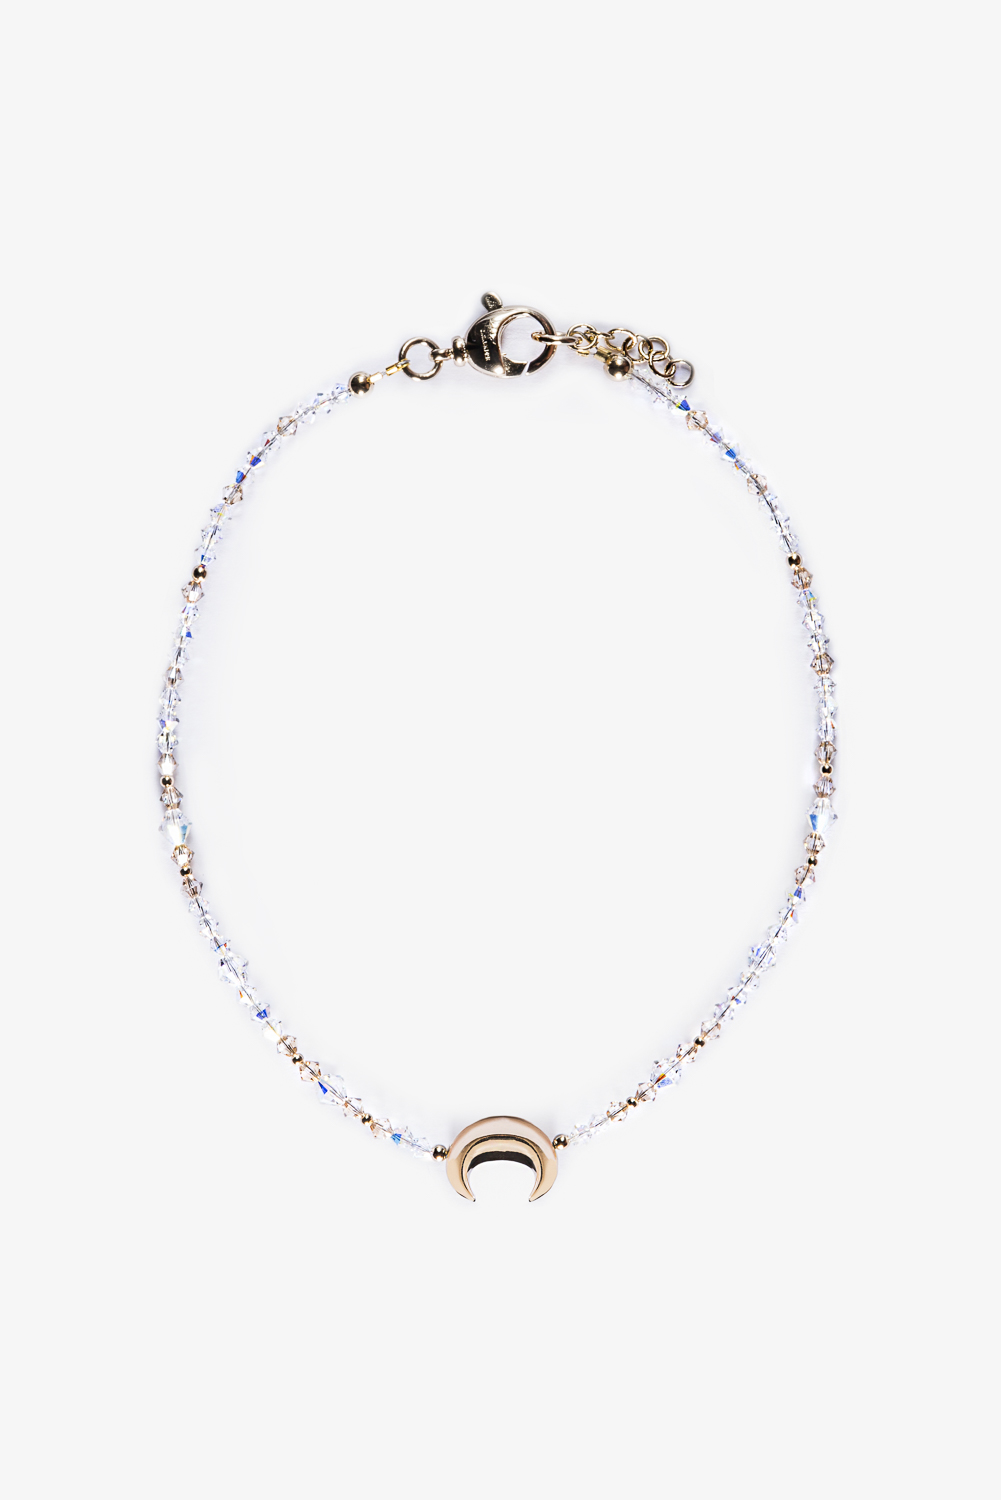 #22 Moon L. Drops Collana girocollo- Choker necklace